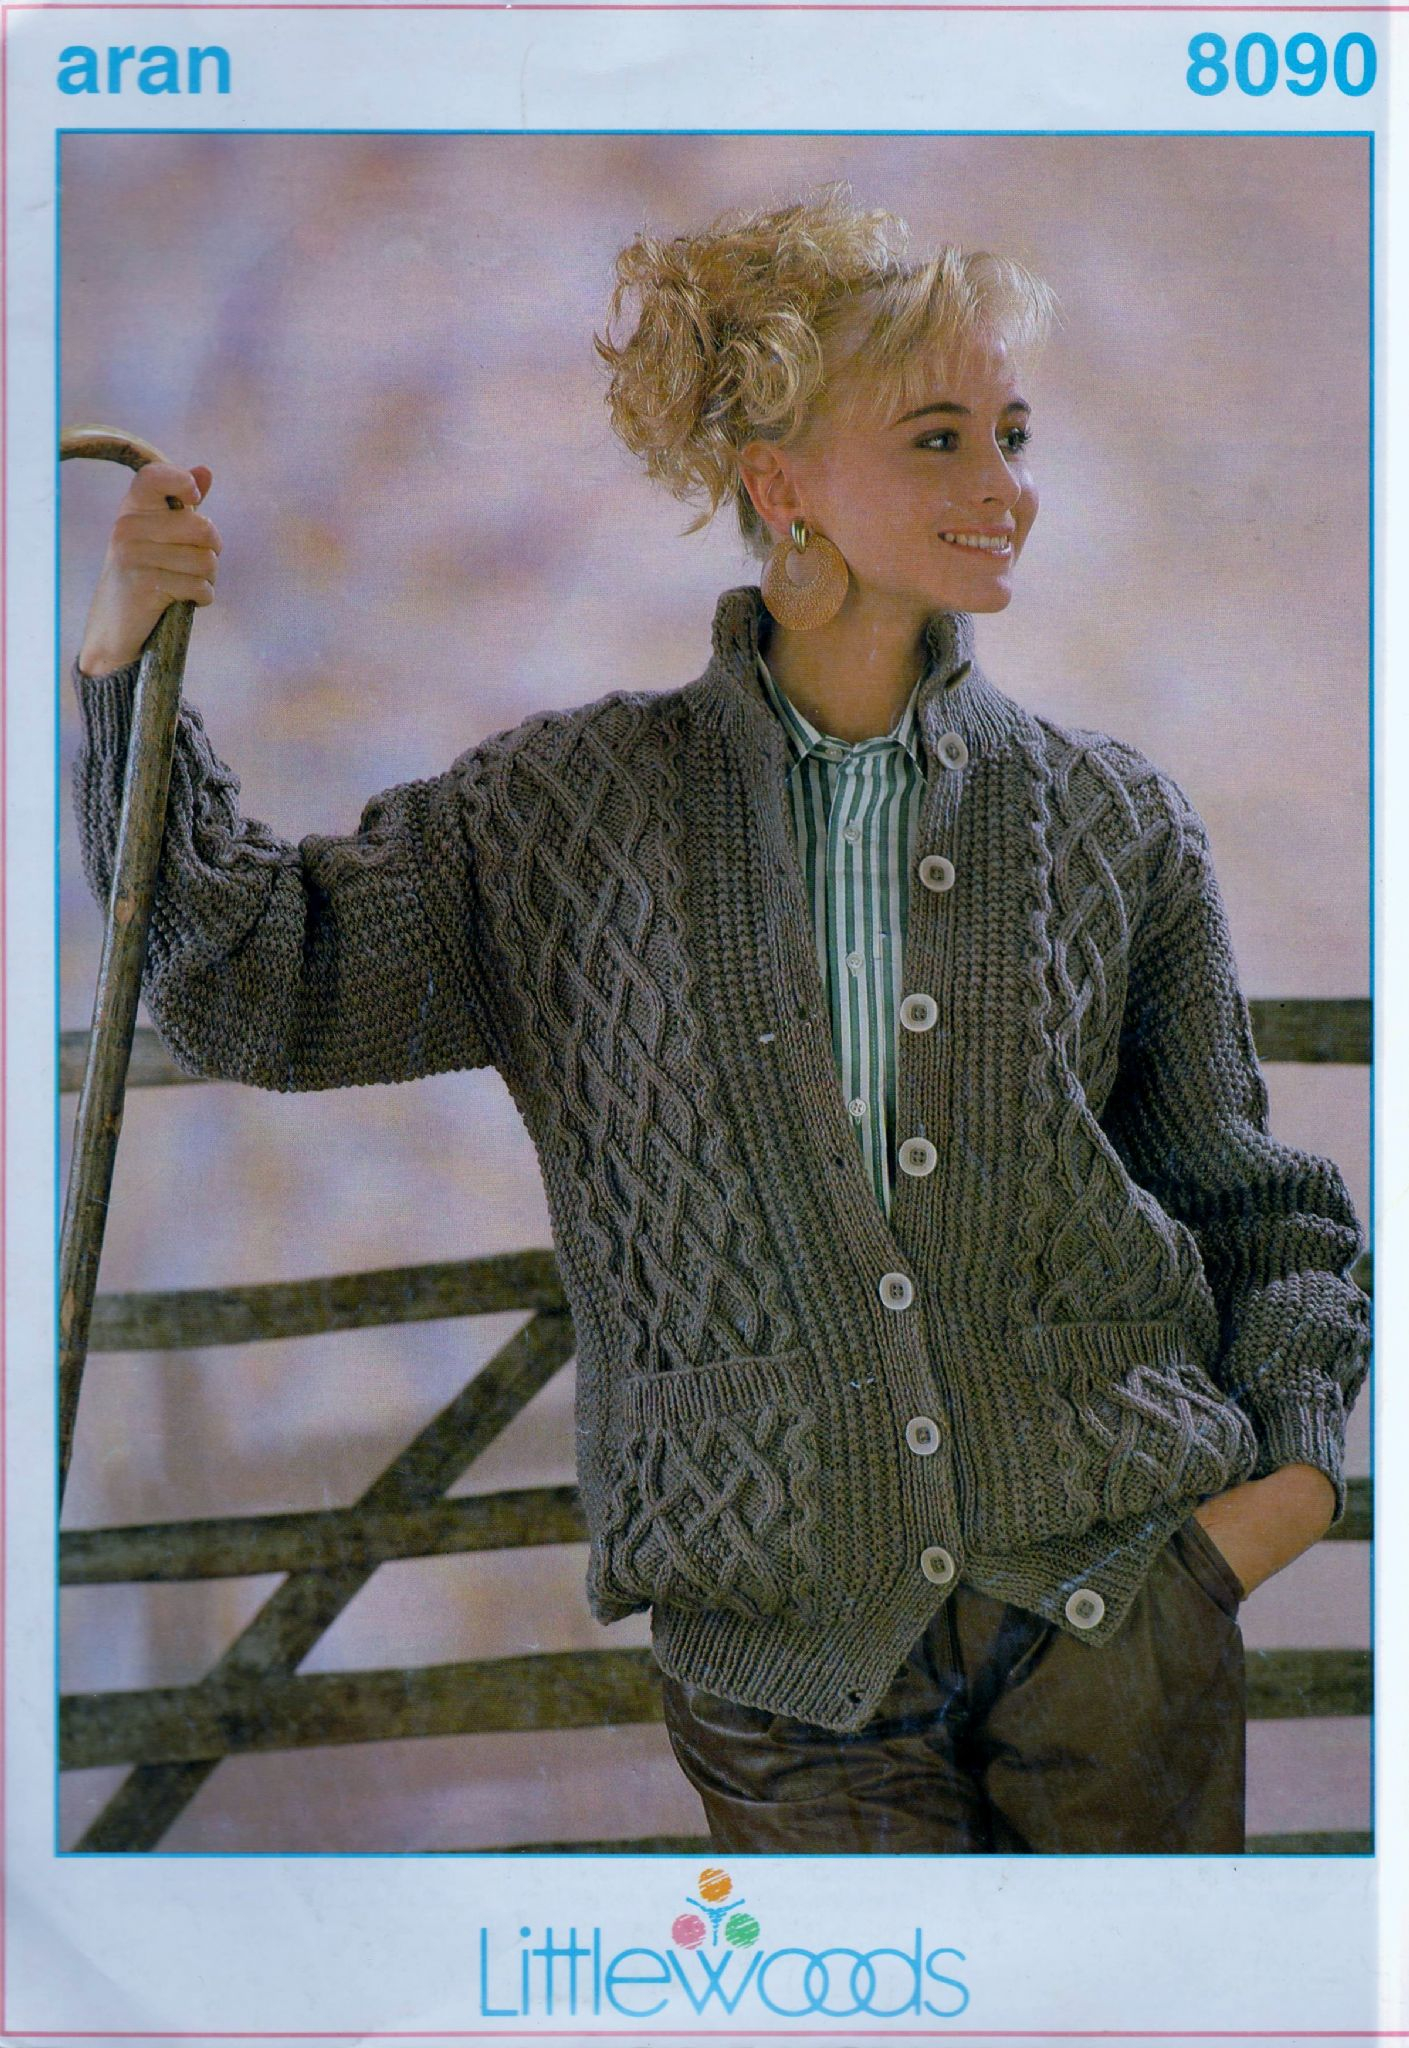 Knitting Patterns Aran Pdf Littlewoods 8090 Aran Knitting Pattern Ladies Cardigan Jacket Bust 32 42